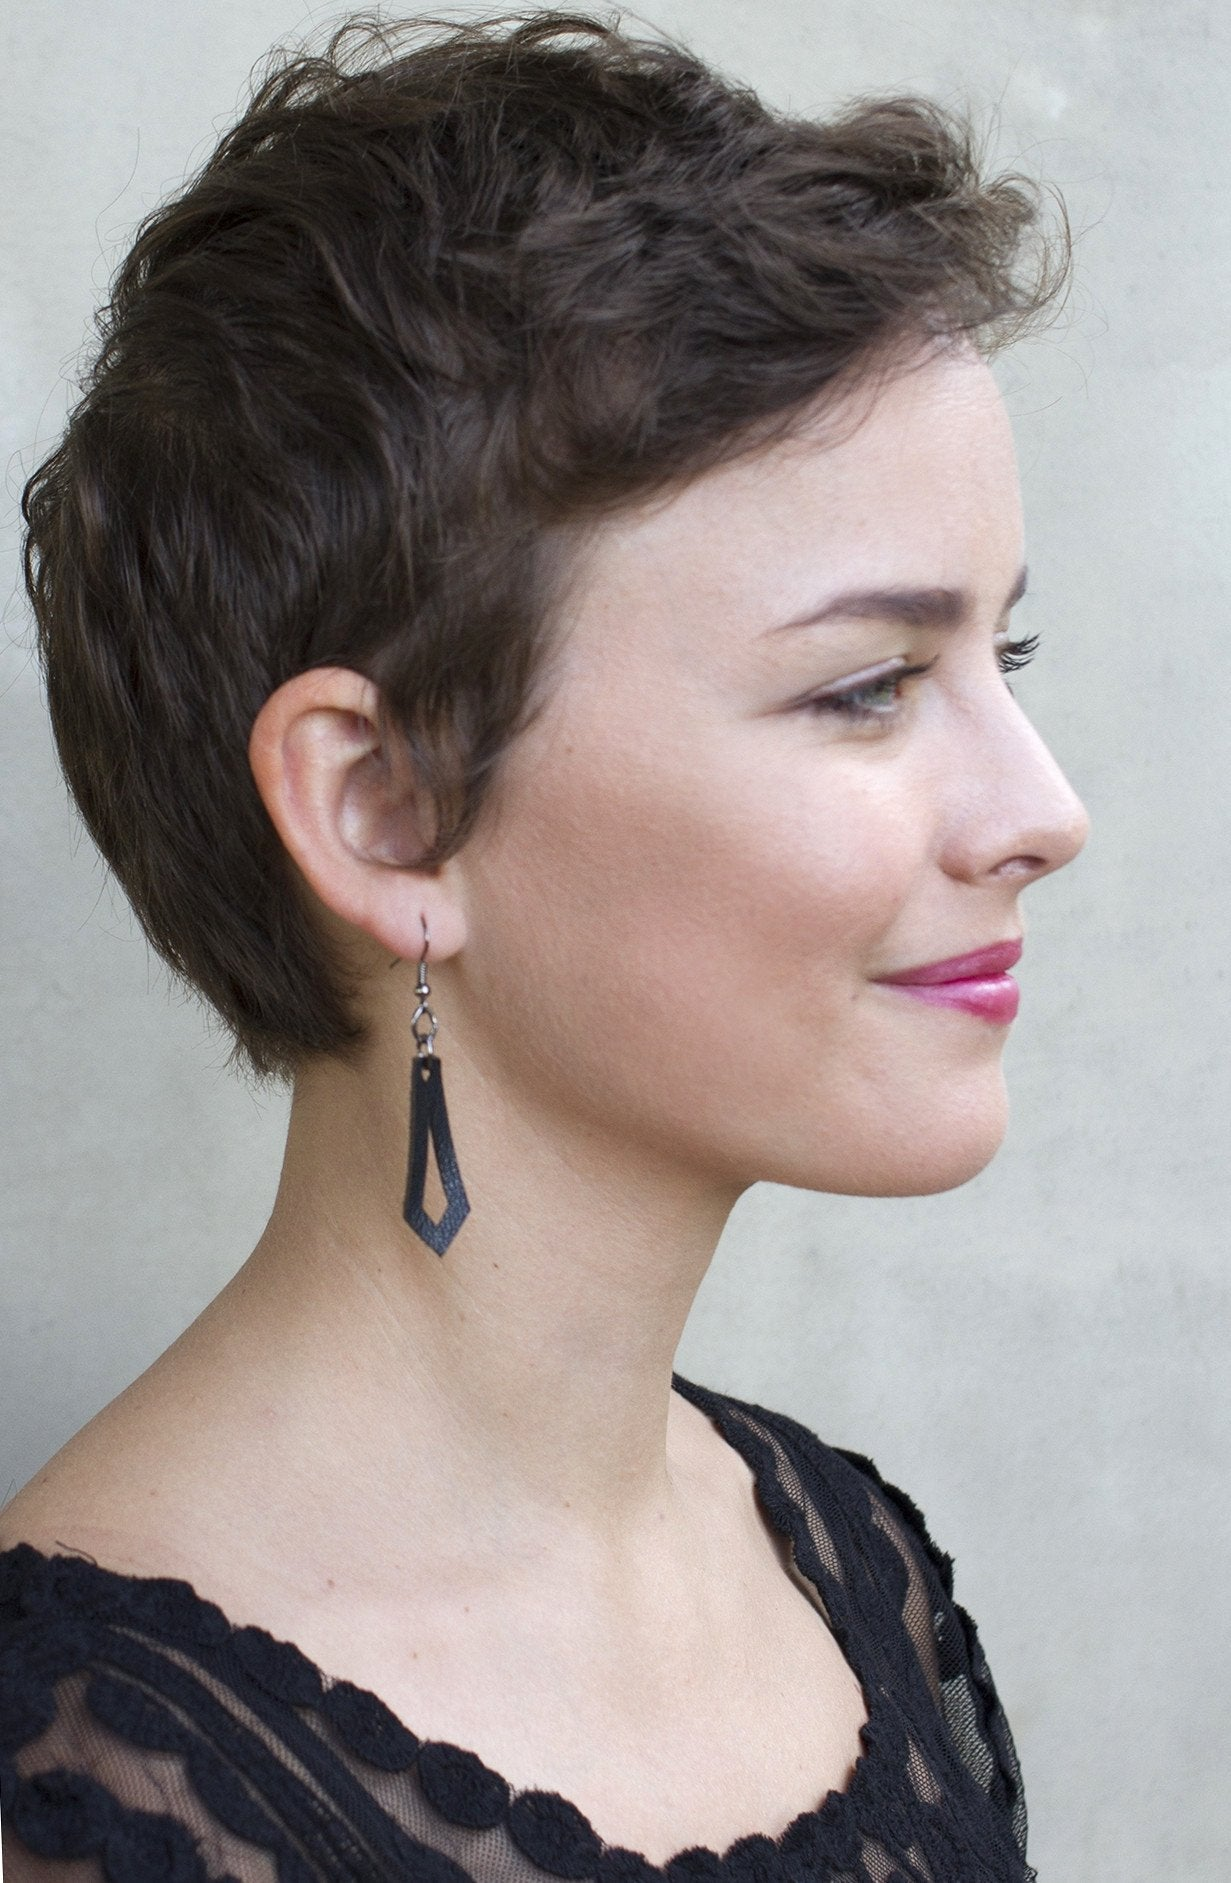 Zeyla Leather Jewelry Black Earring